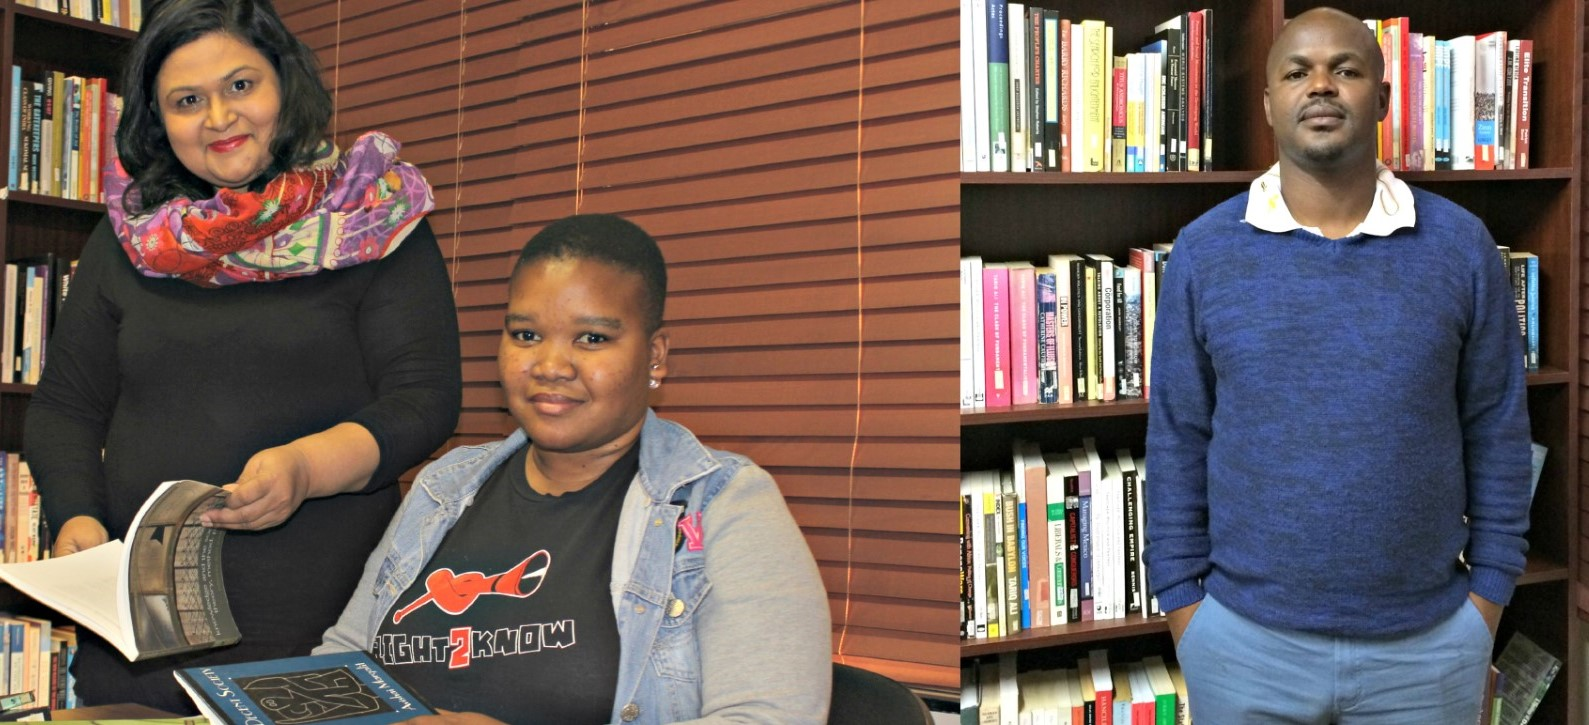 Centre for Civil Society Welcomes Community Scholars